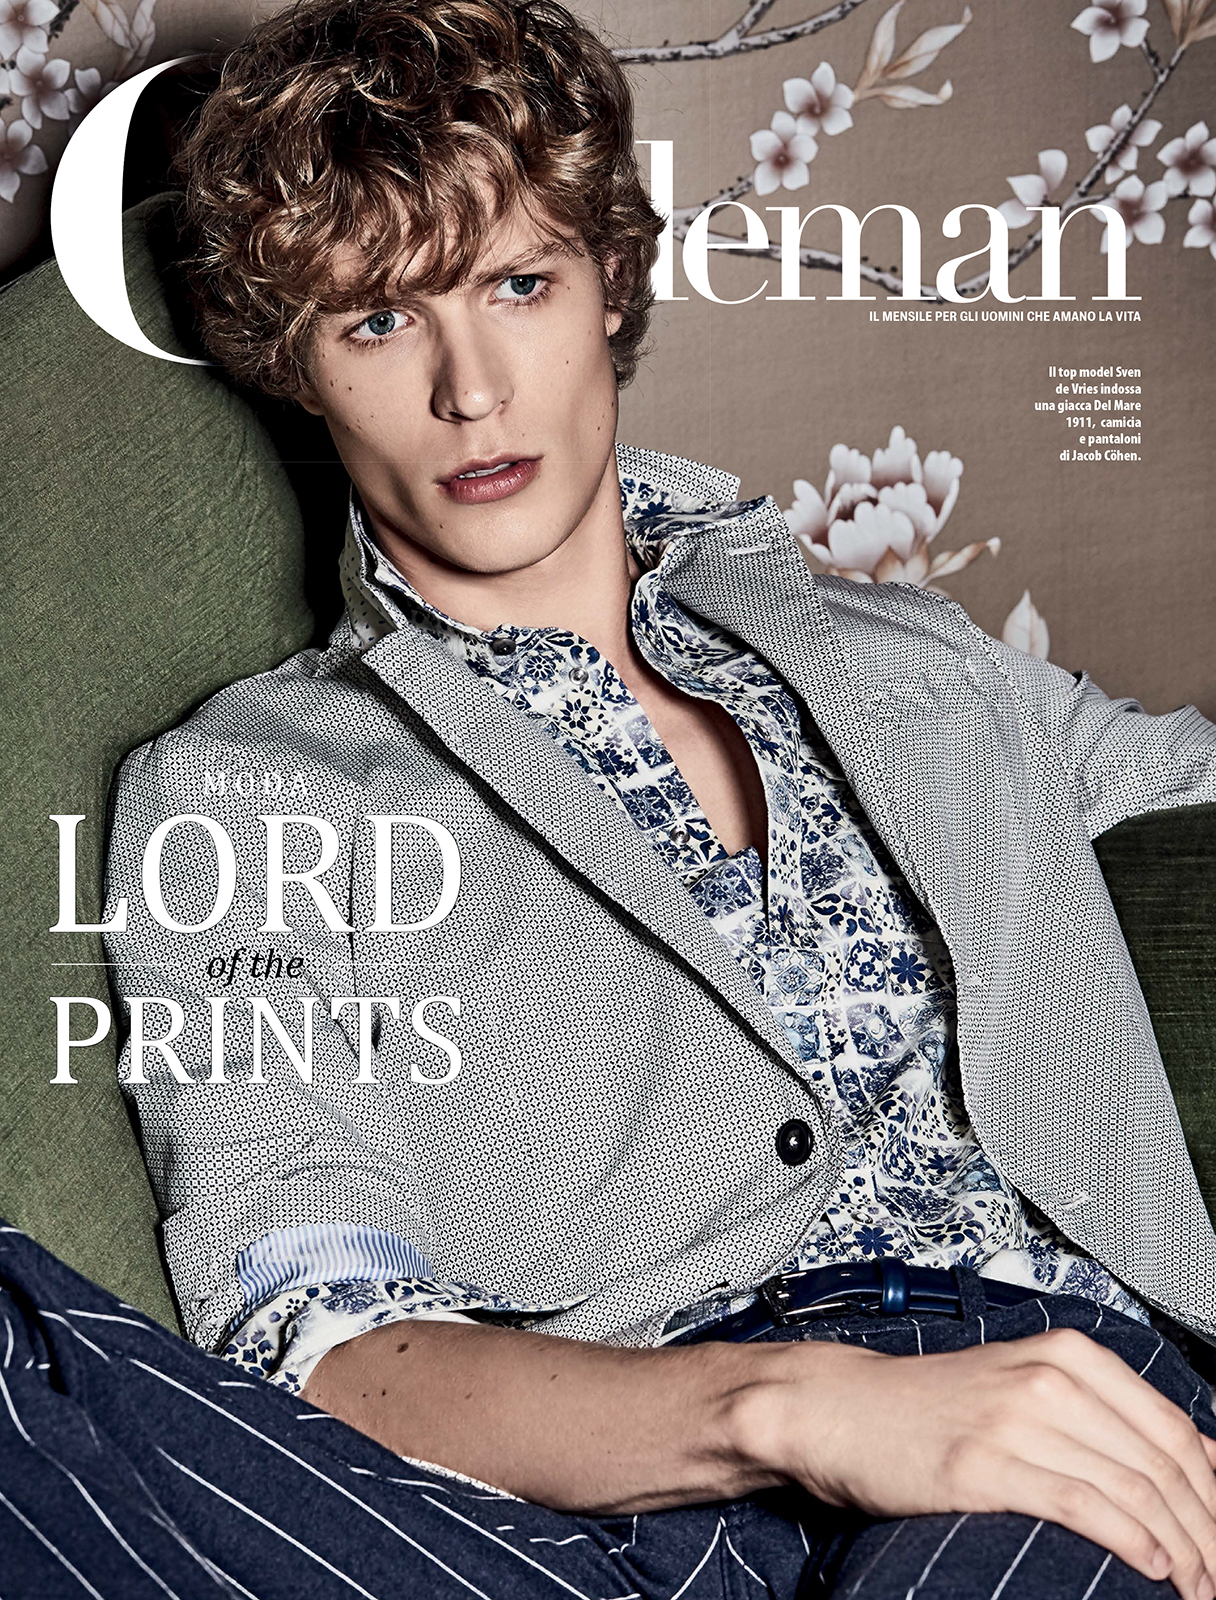 Gentleman Magazine Italia – Lord of the prints